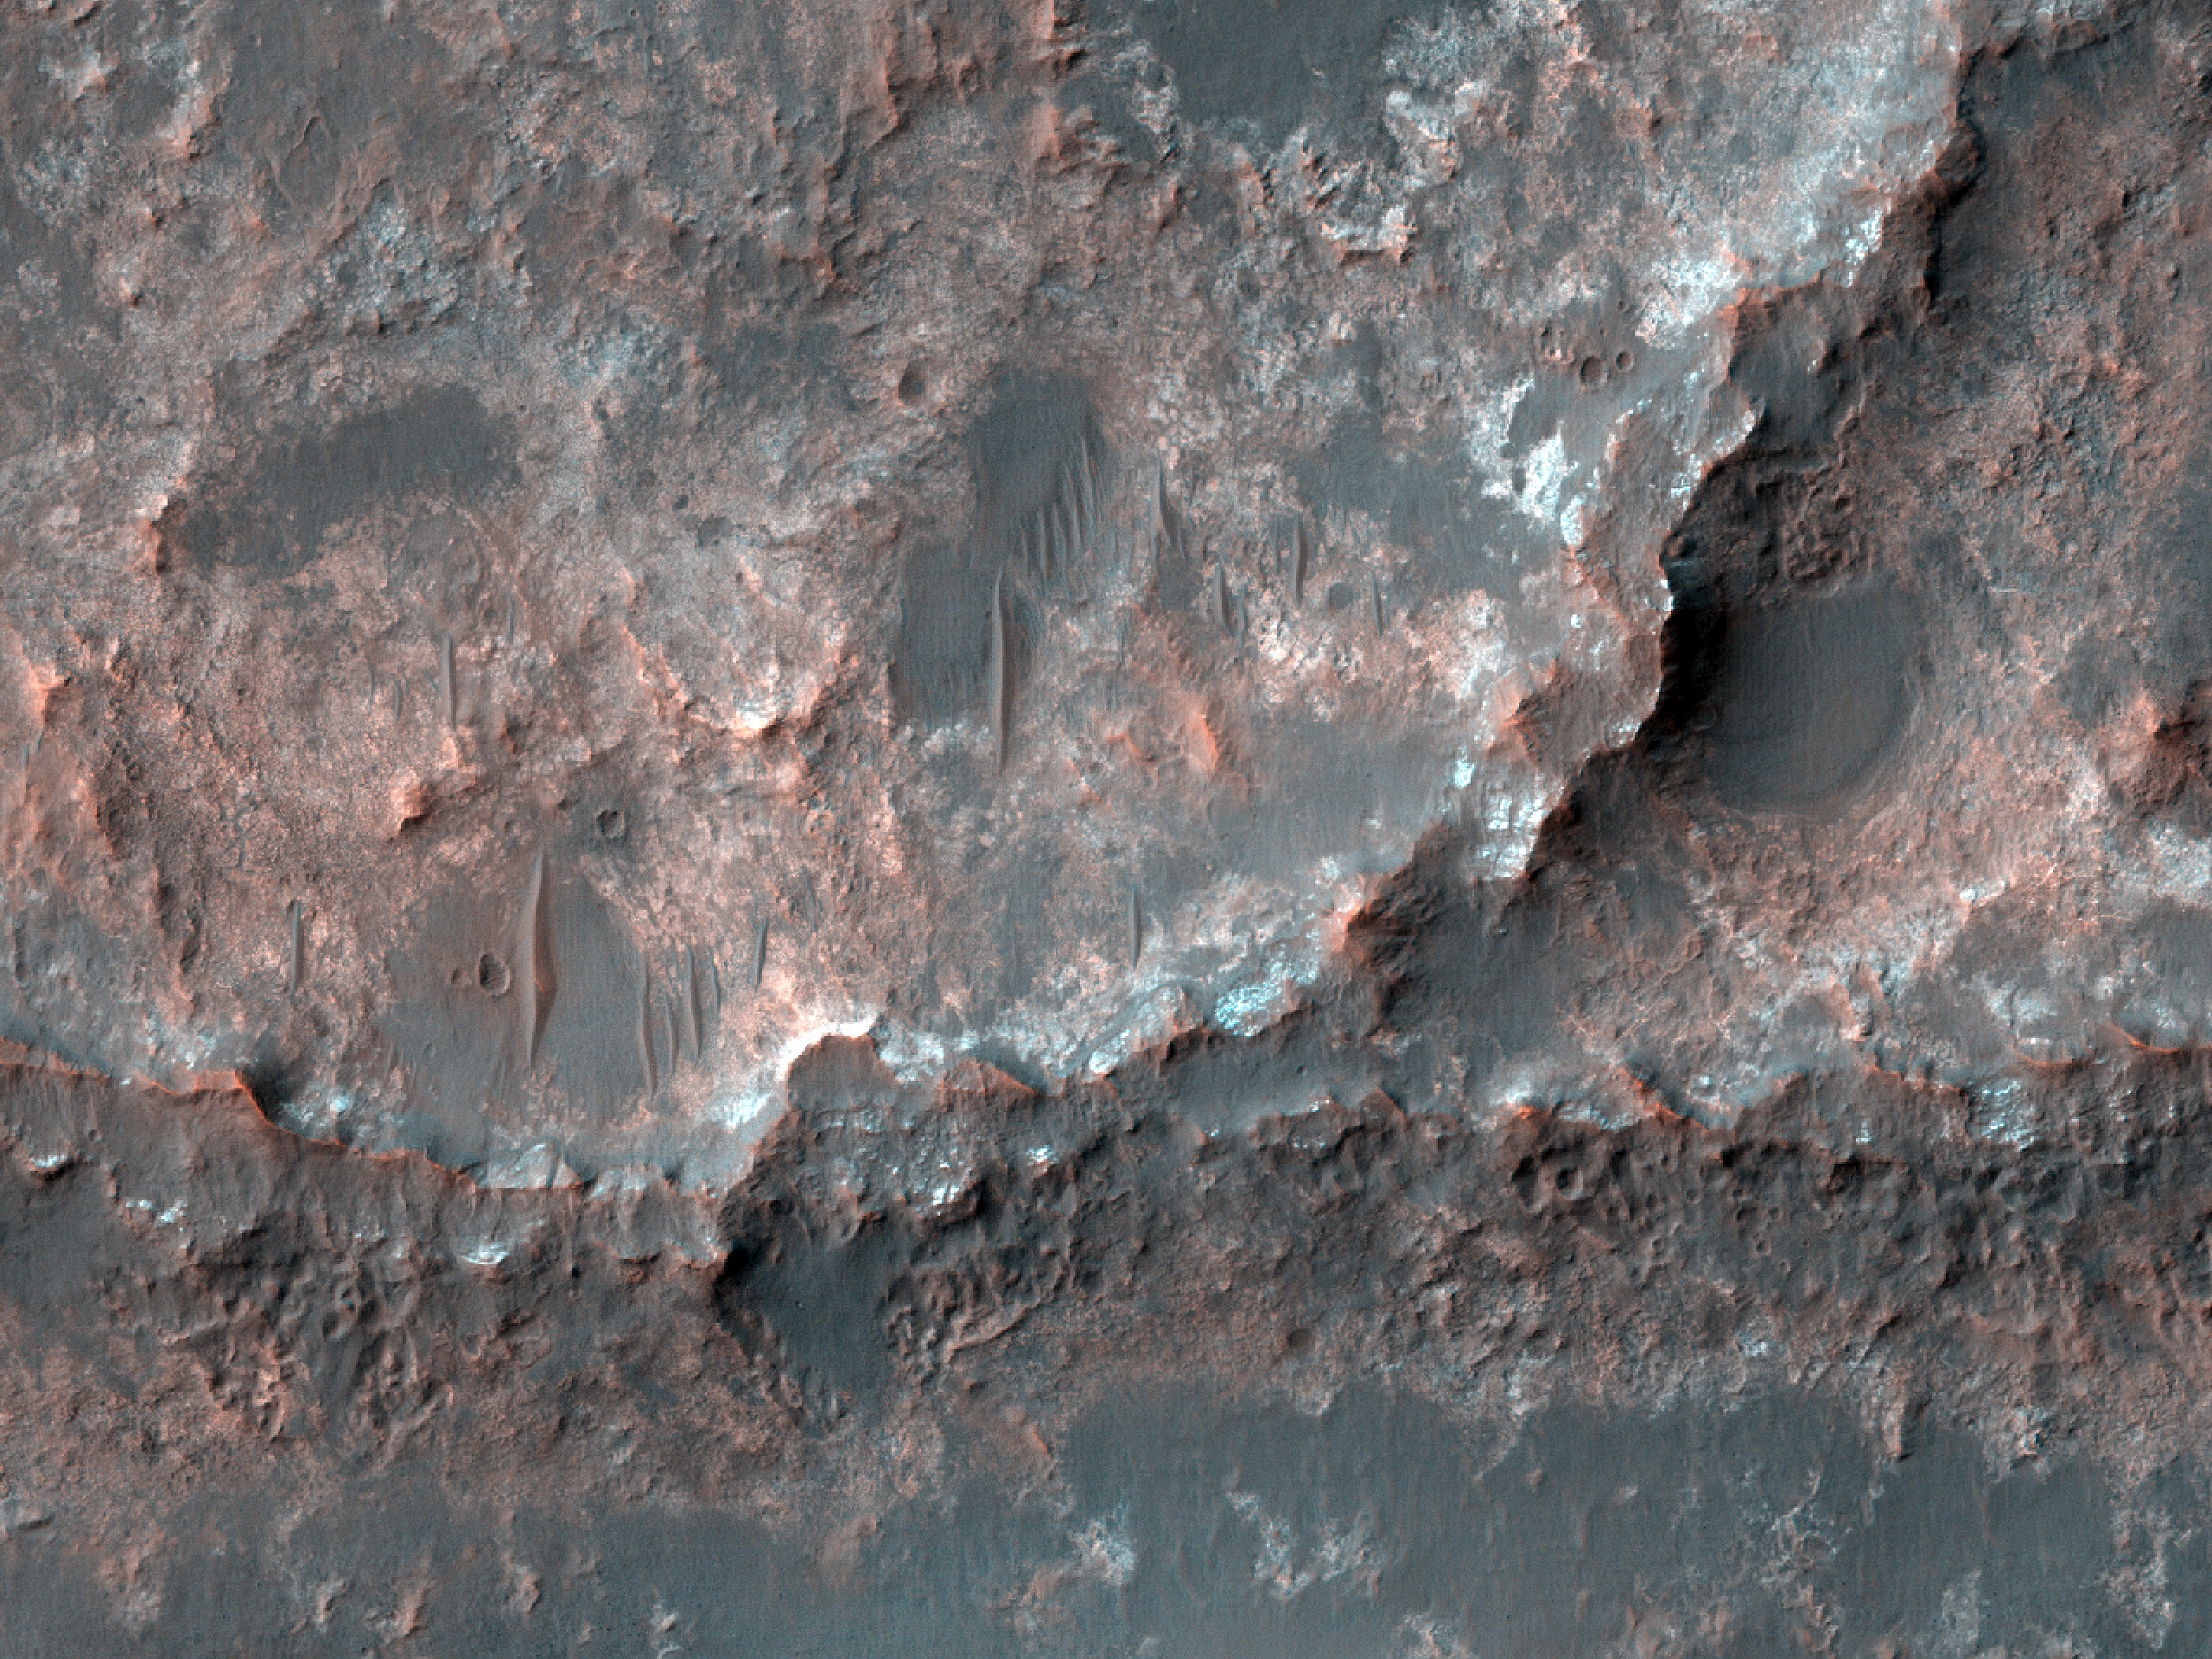 Possible Inverted Stream Channels near Mariner Crater